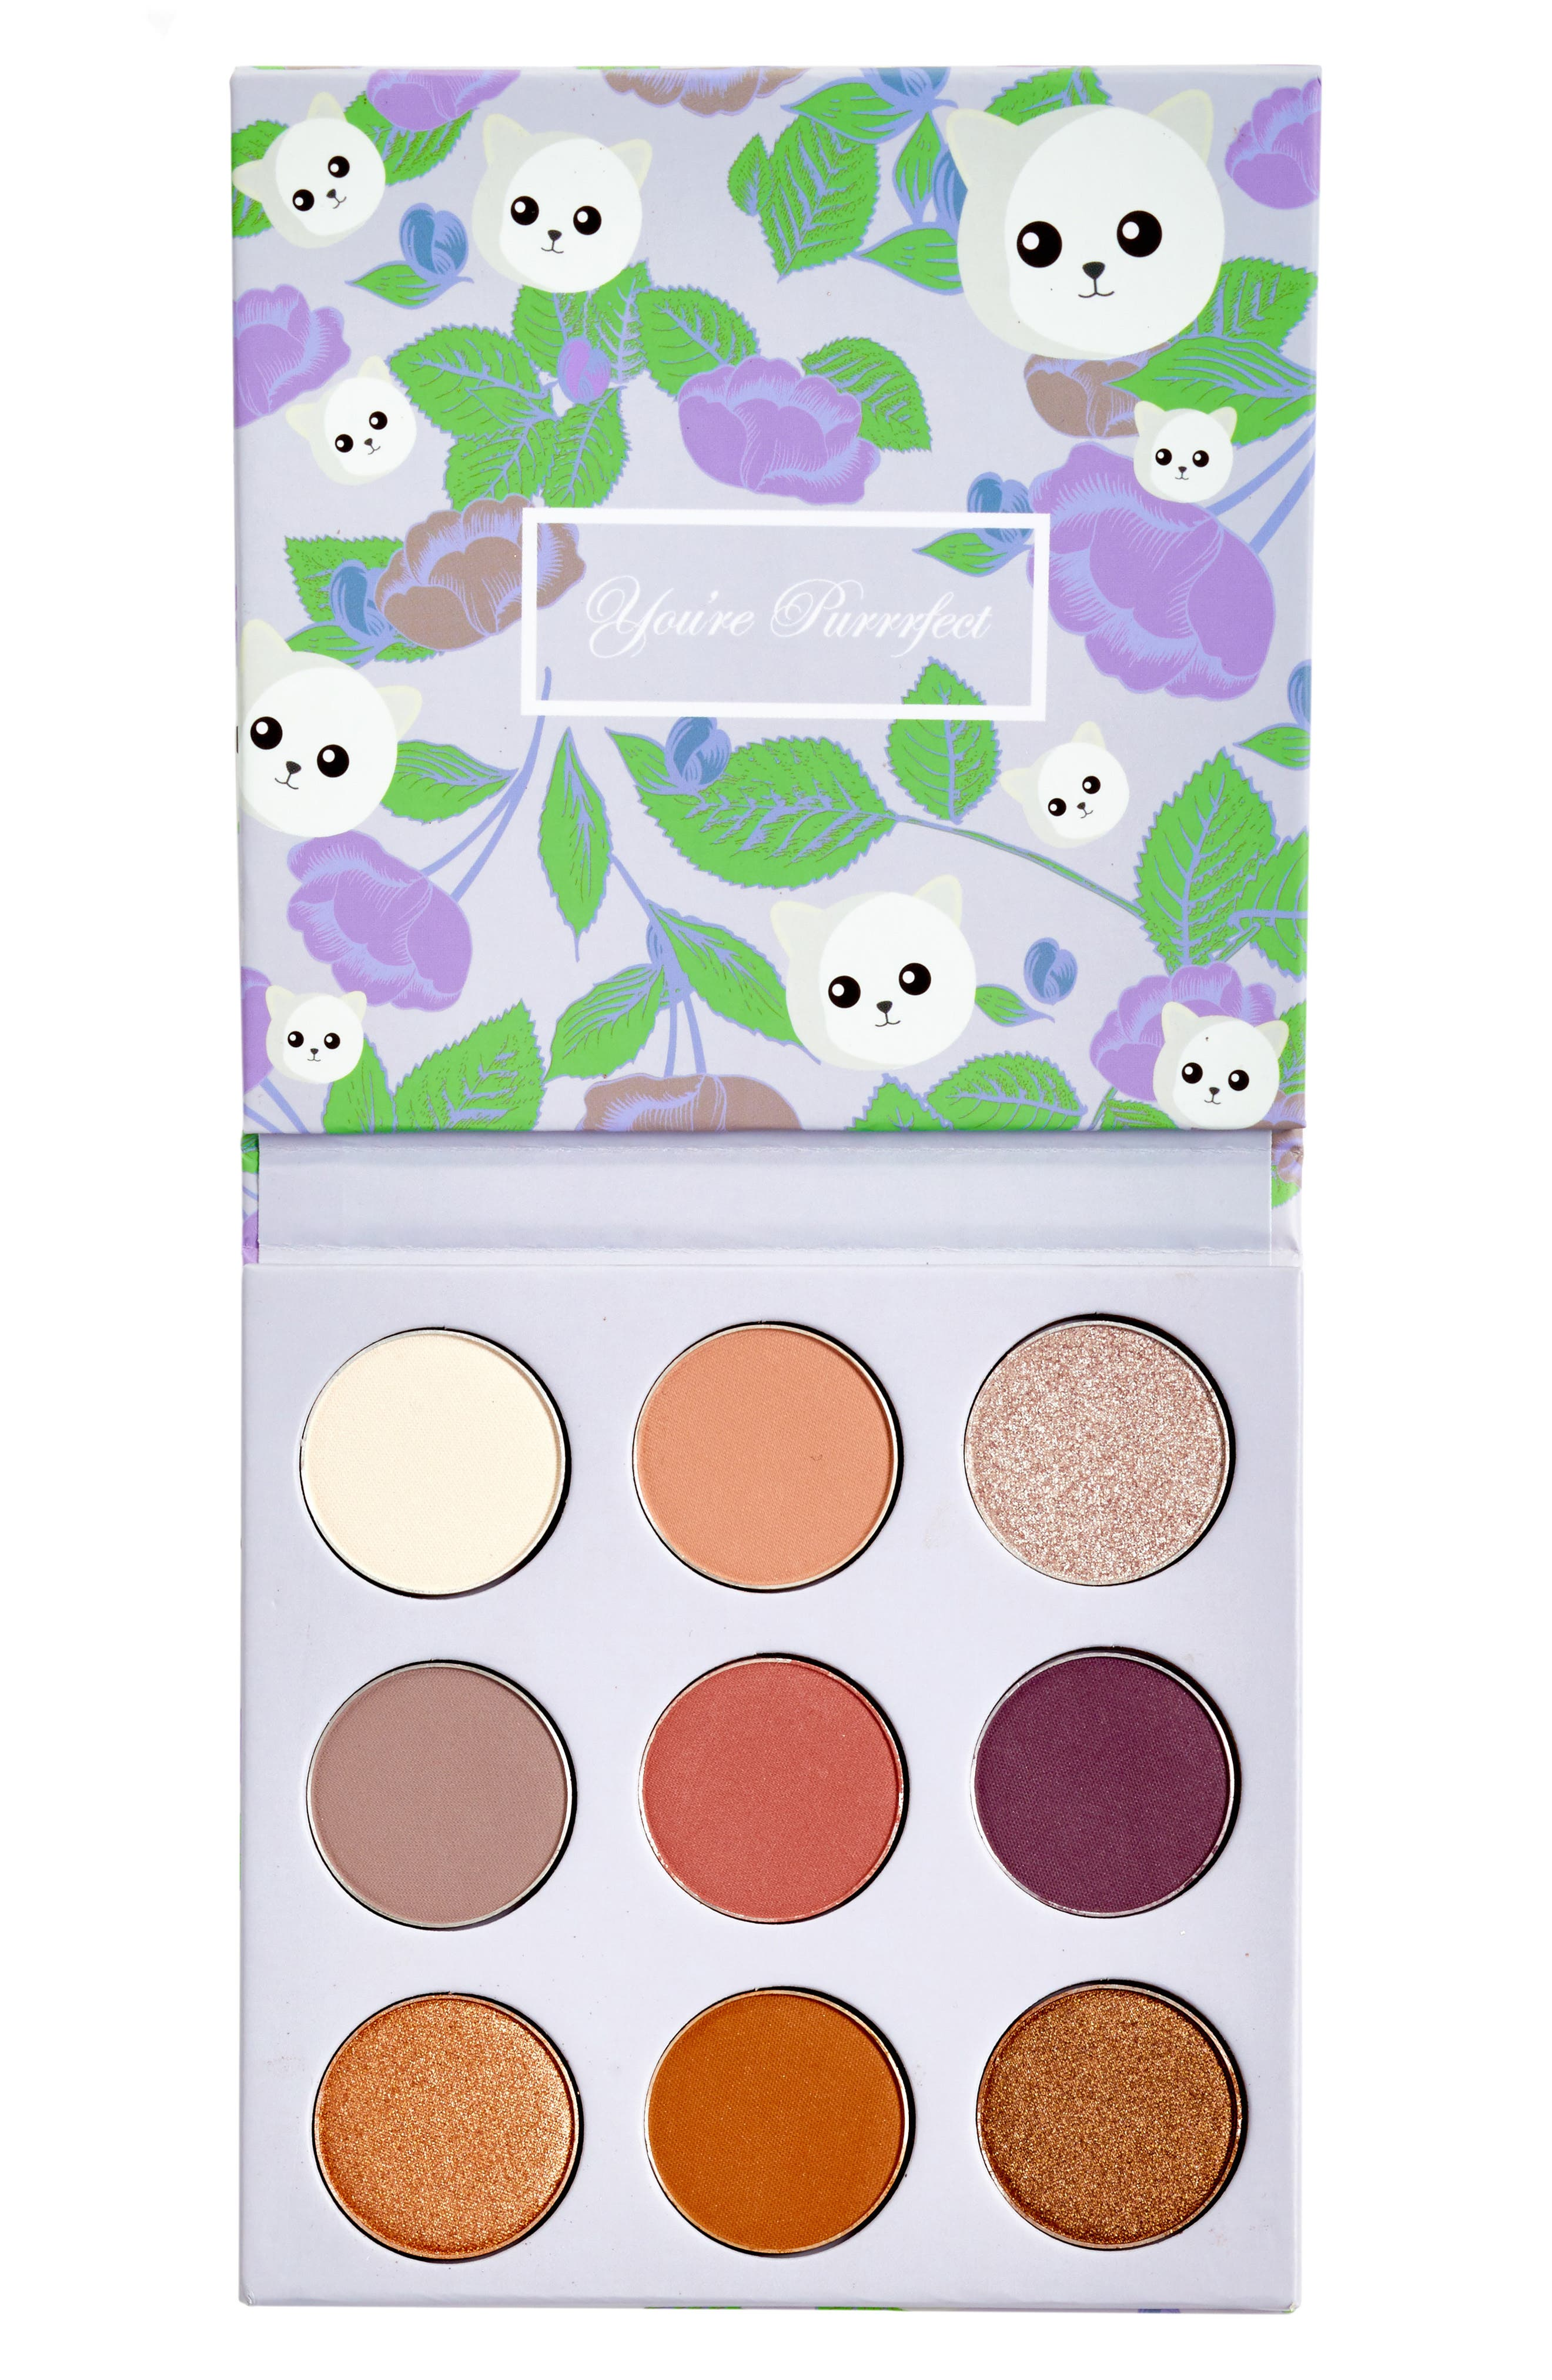 WINKY LUX Cashmere Kitten Palette, Main, color, 000